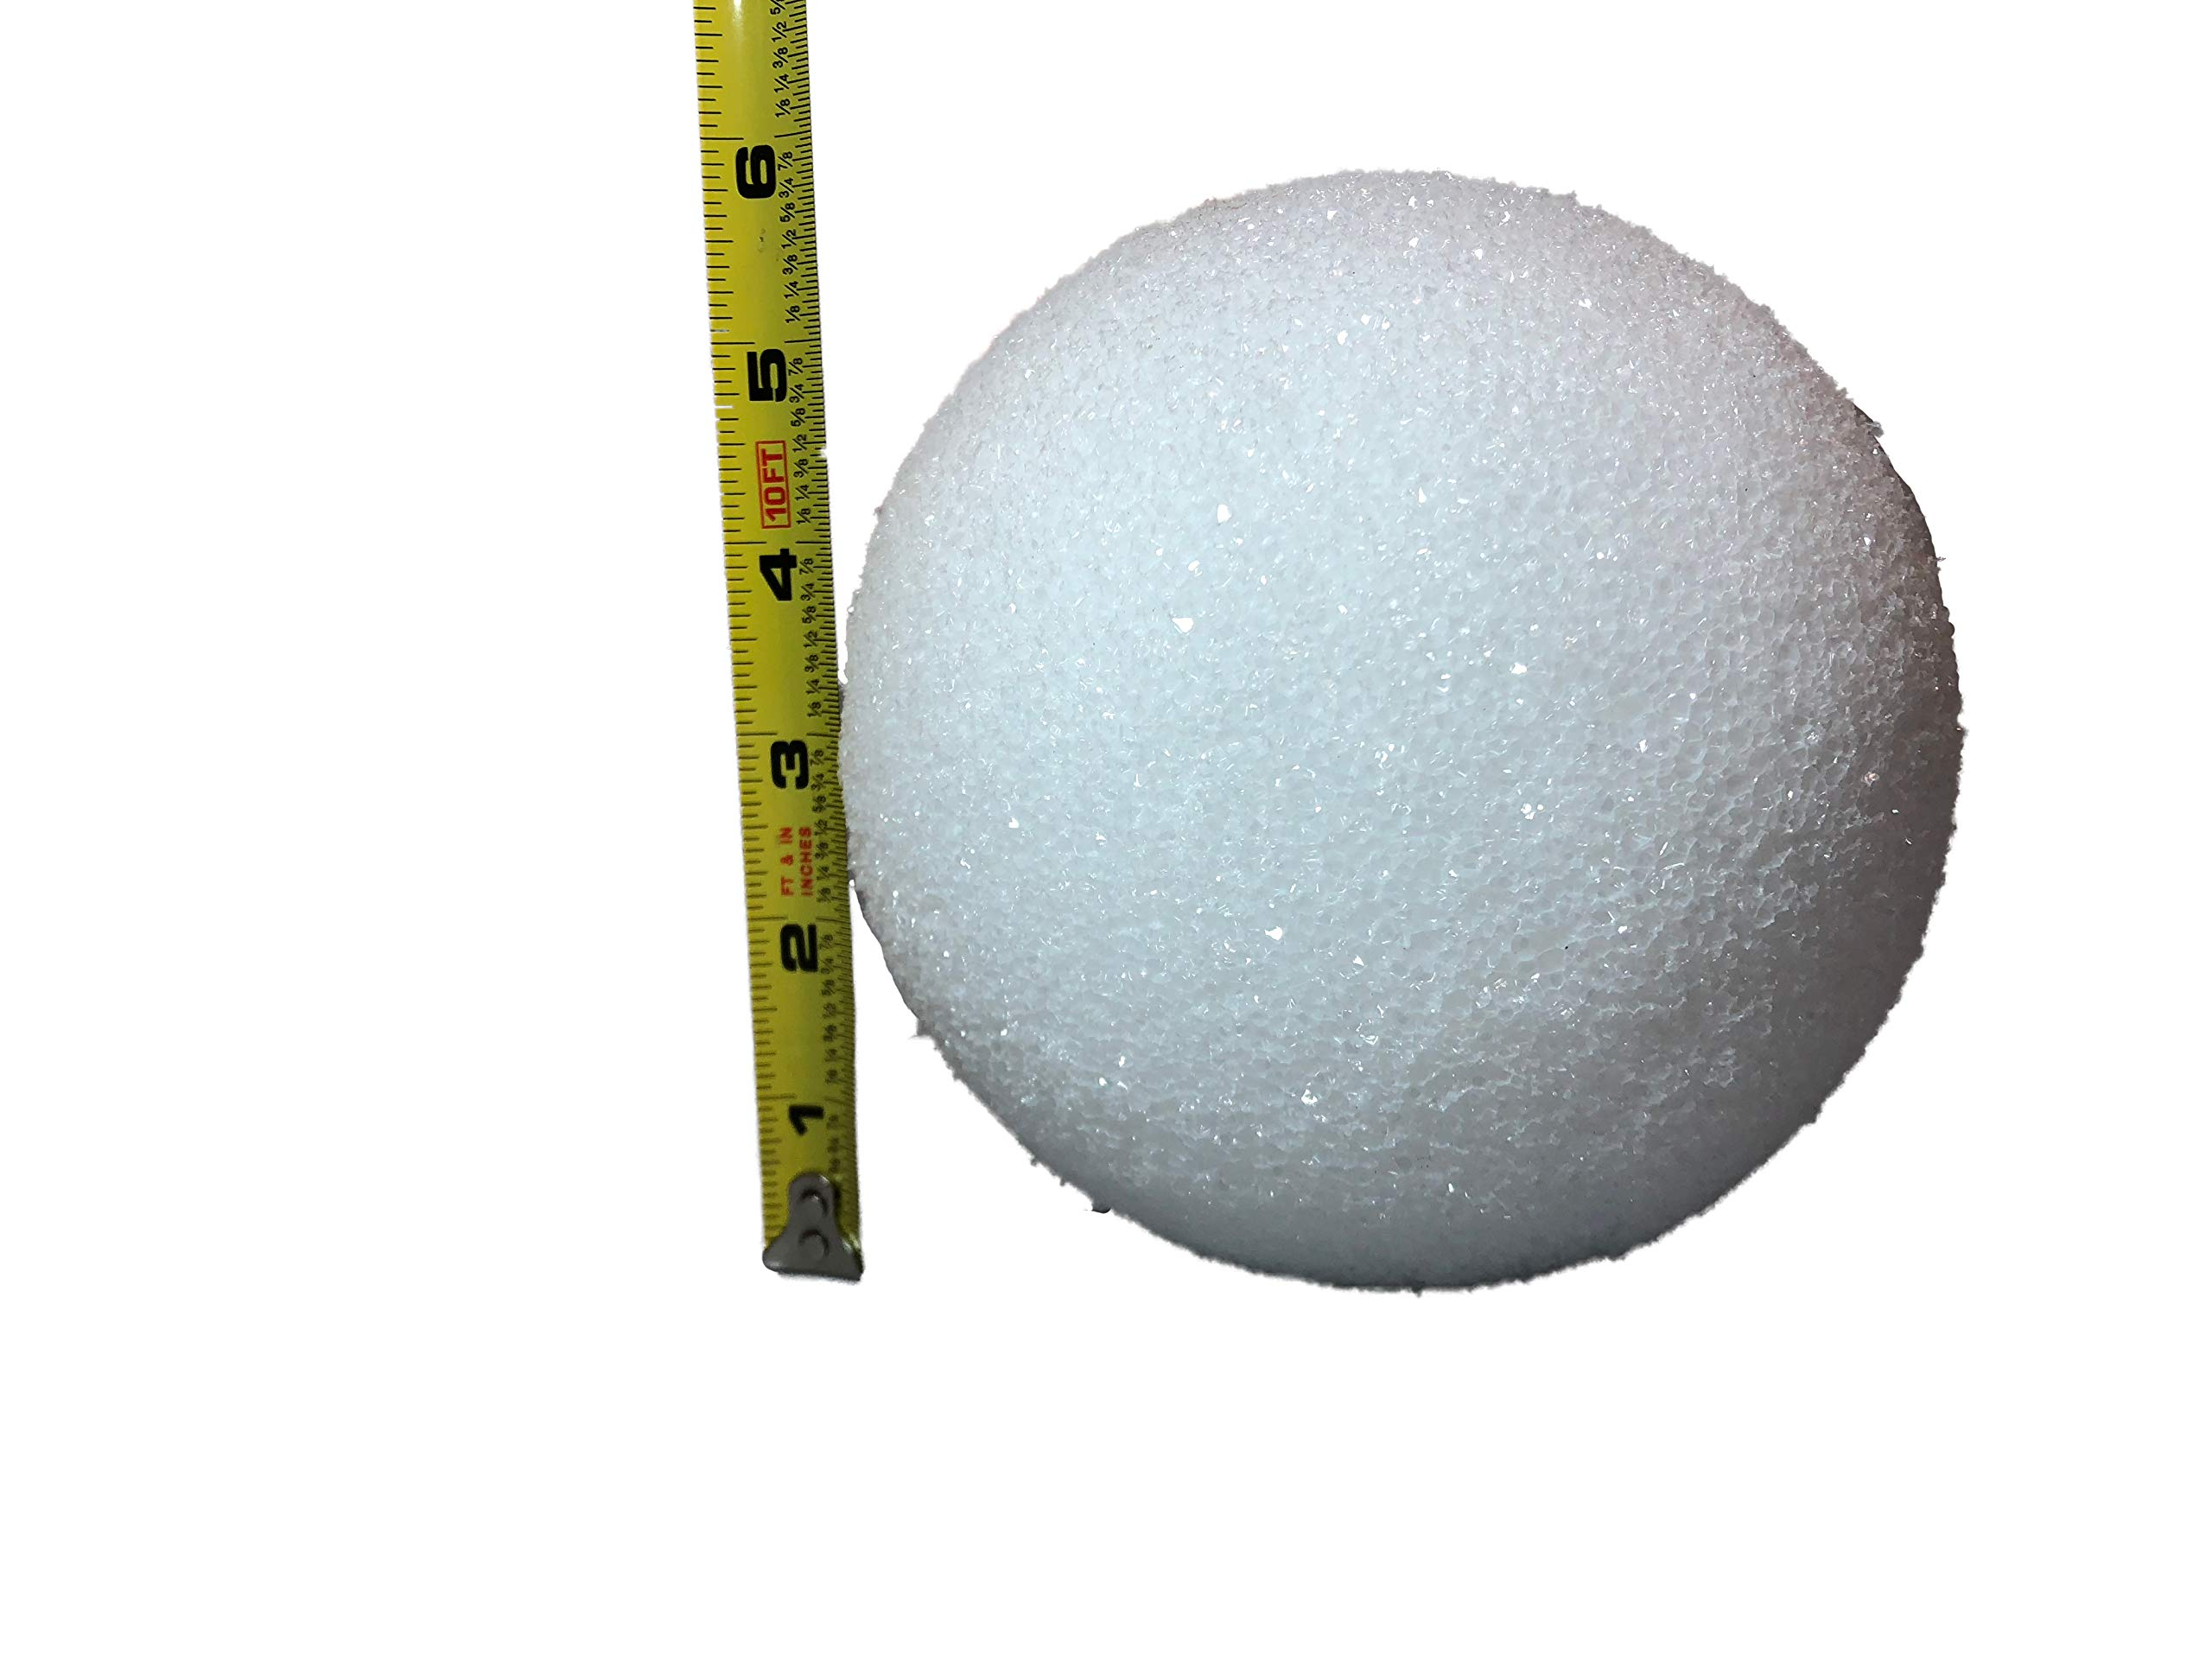 White Styrofoam Balls for Arts and Crafts (12 Balls) - by LACrafts (6 Inch)